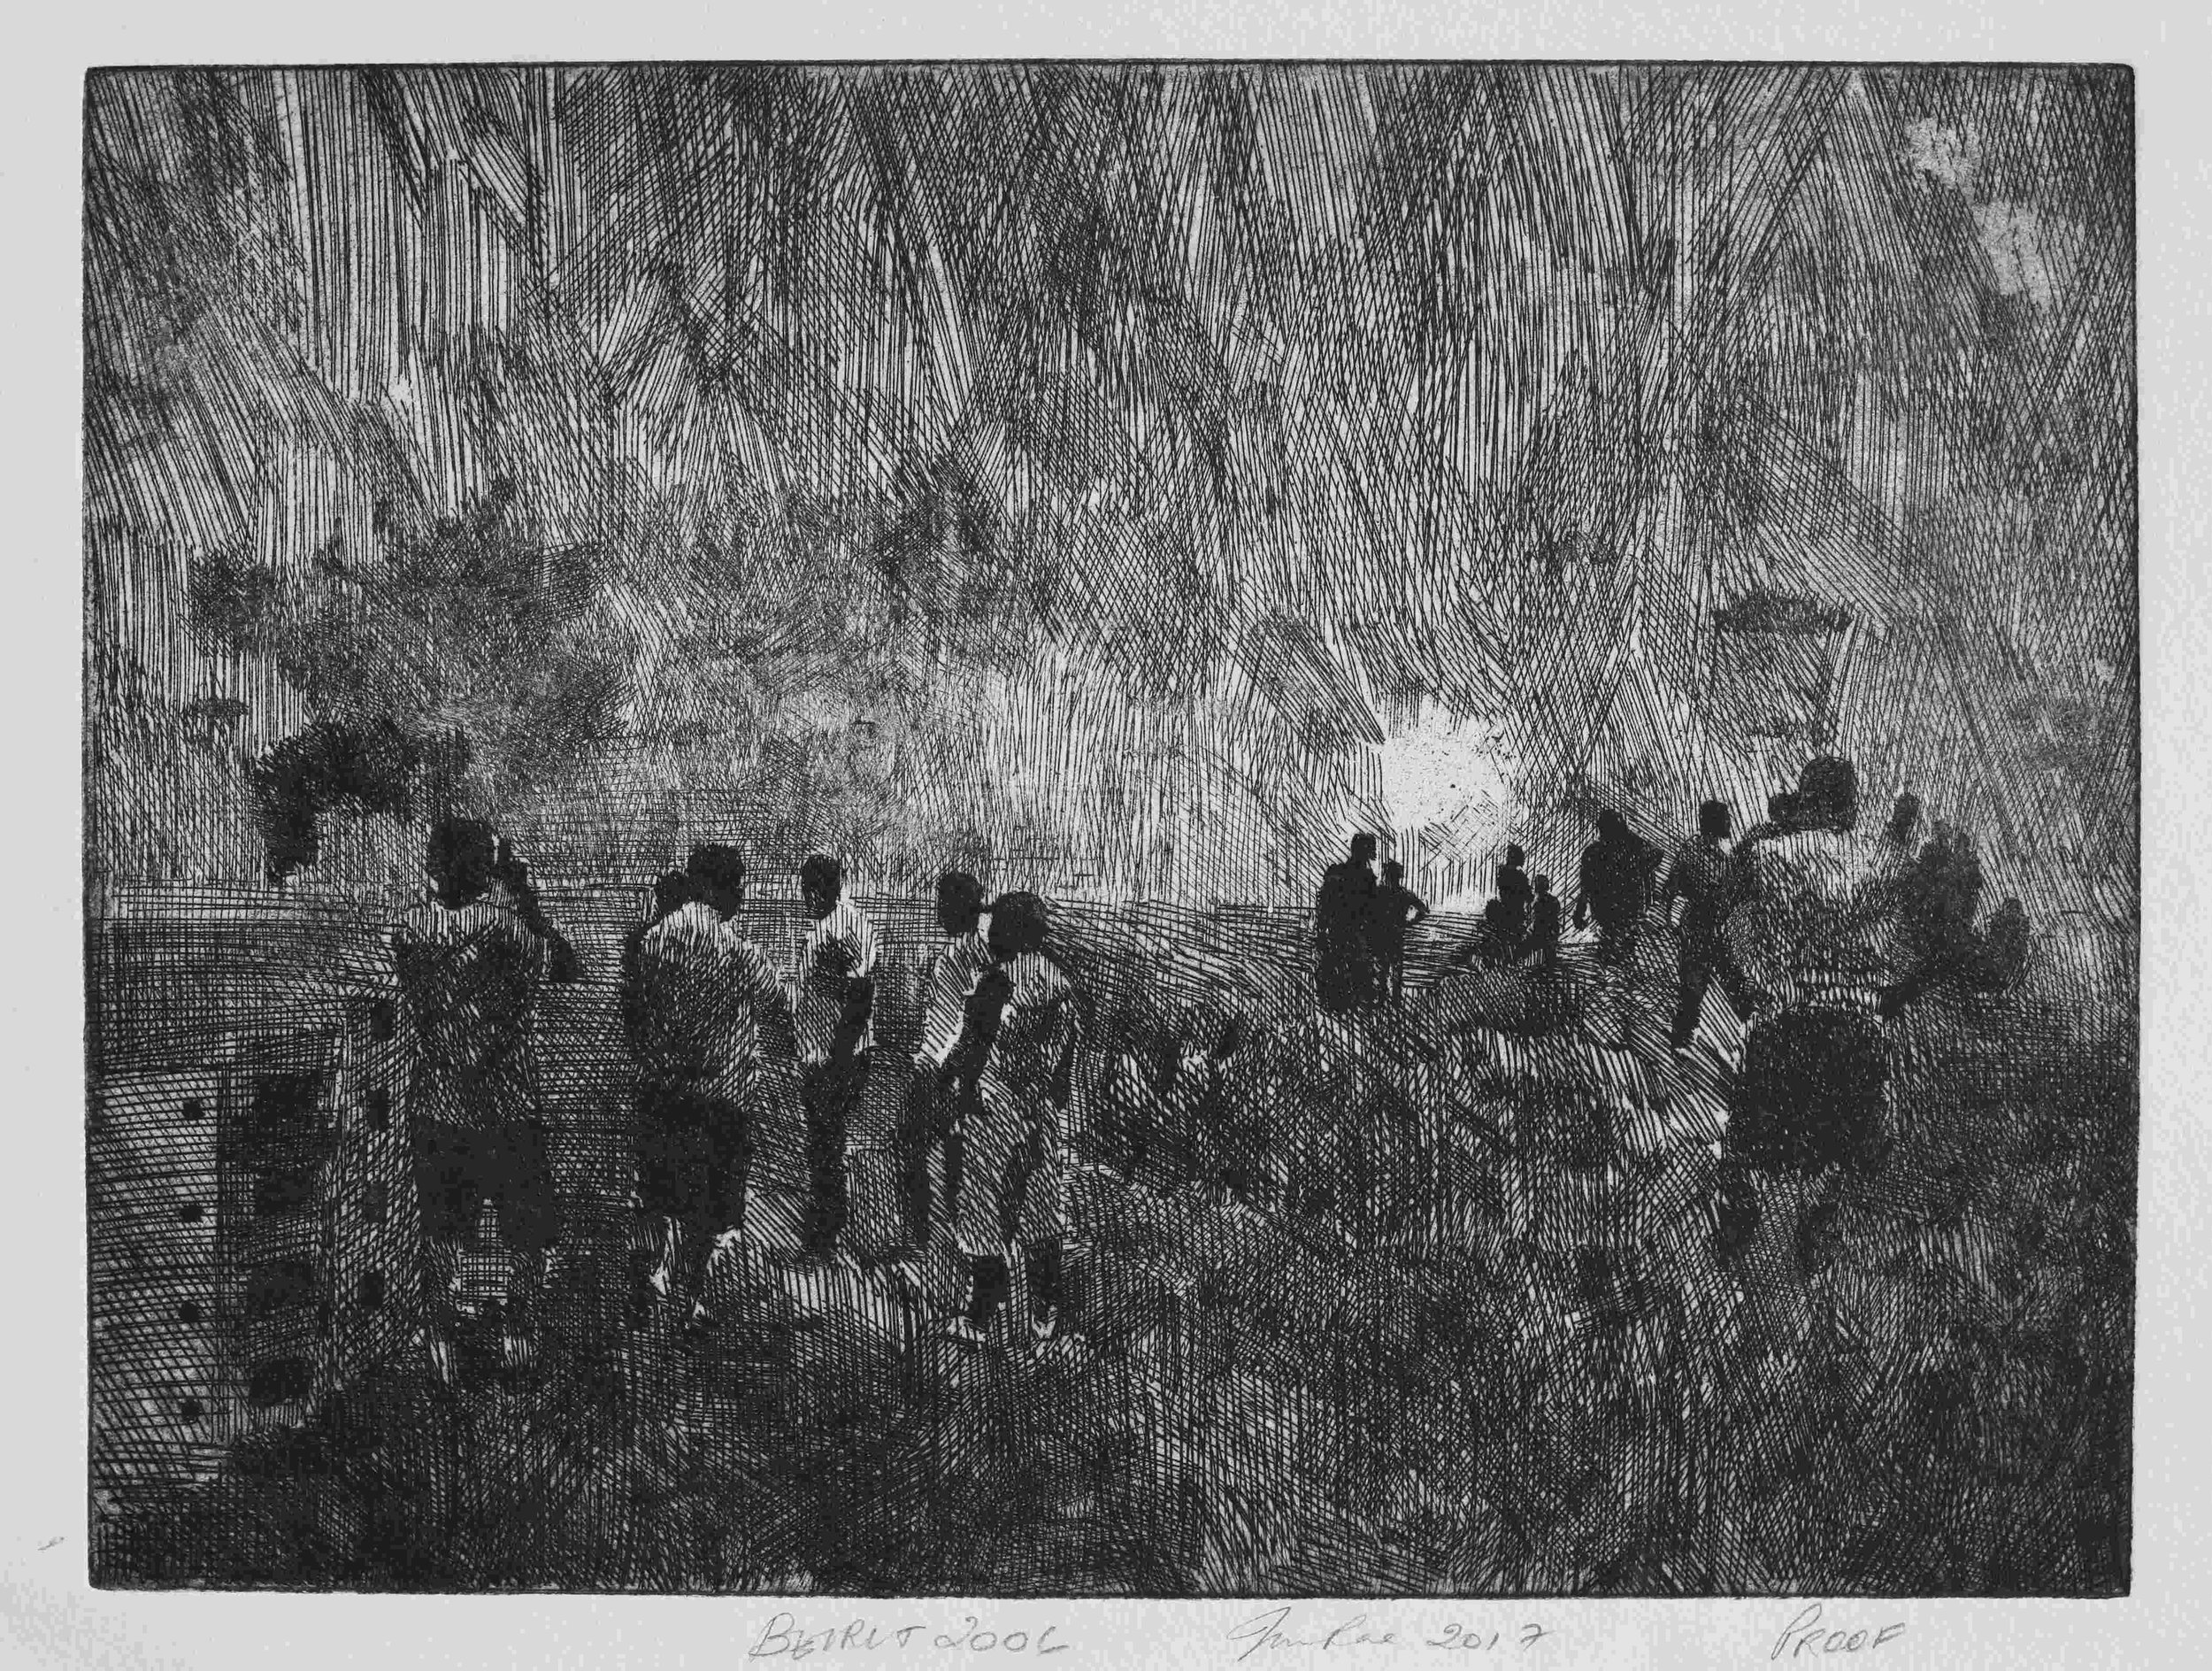 July War 2006 (Beirut, men on hill), 2017, hard ground copper etching on Hahnemuhle paper, 37cm x 42.5cm, edition of 10 (2017)